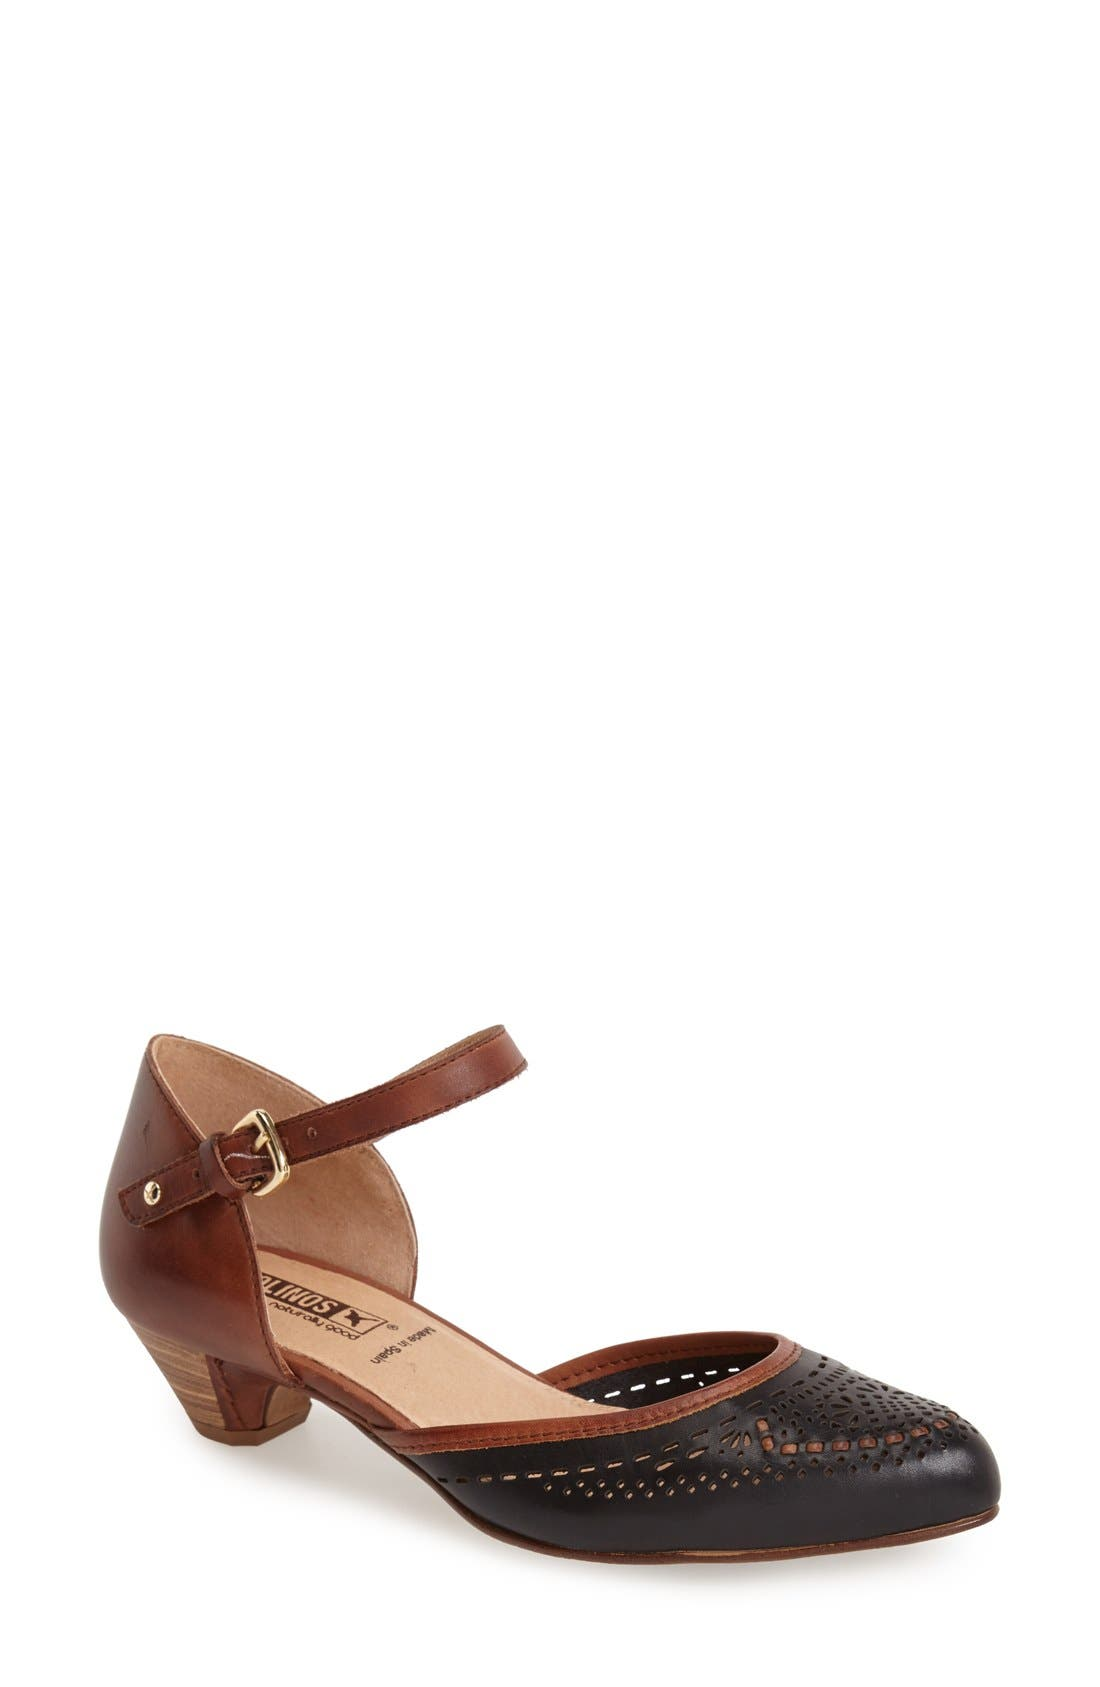 'Elba' Perforated Leather Ankle Strap Sandal,                             Main thumbnail 2, color,